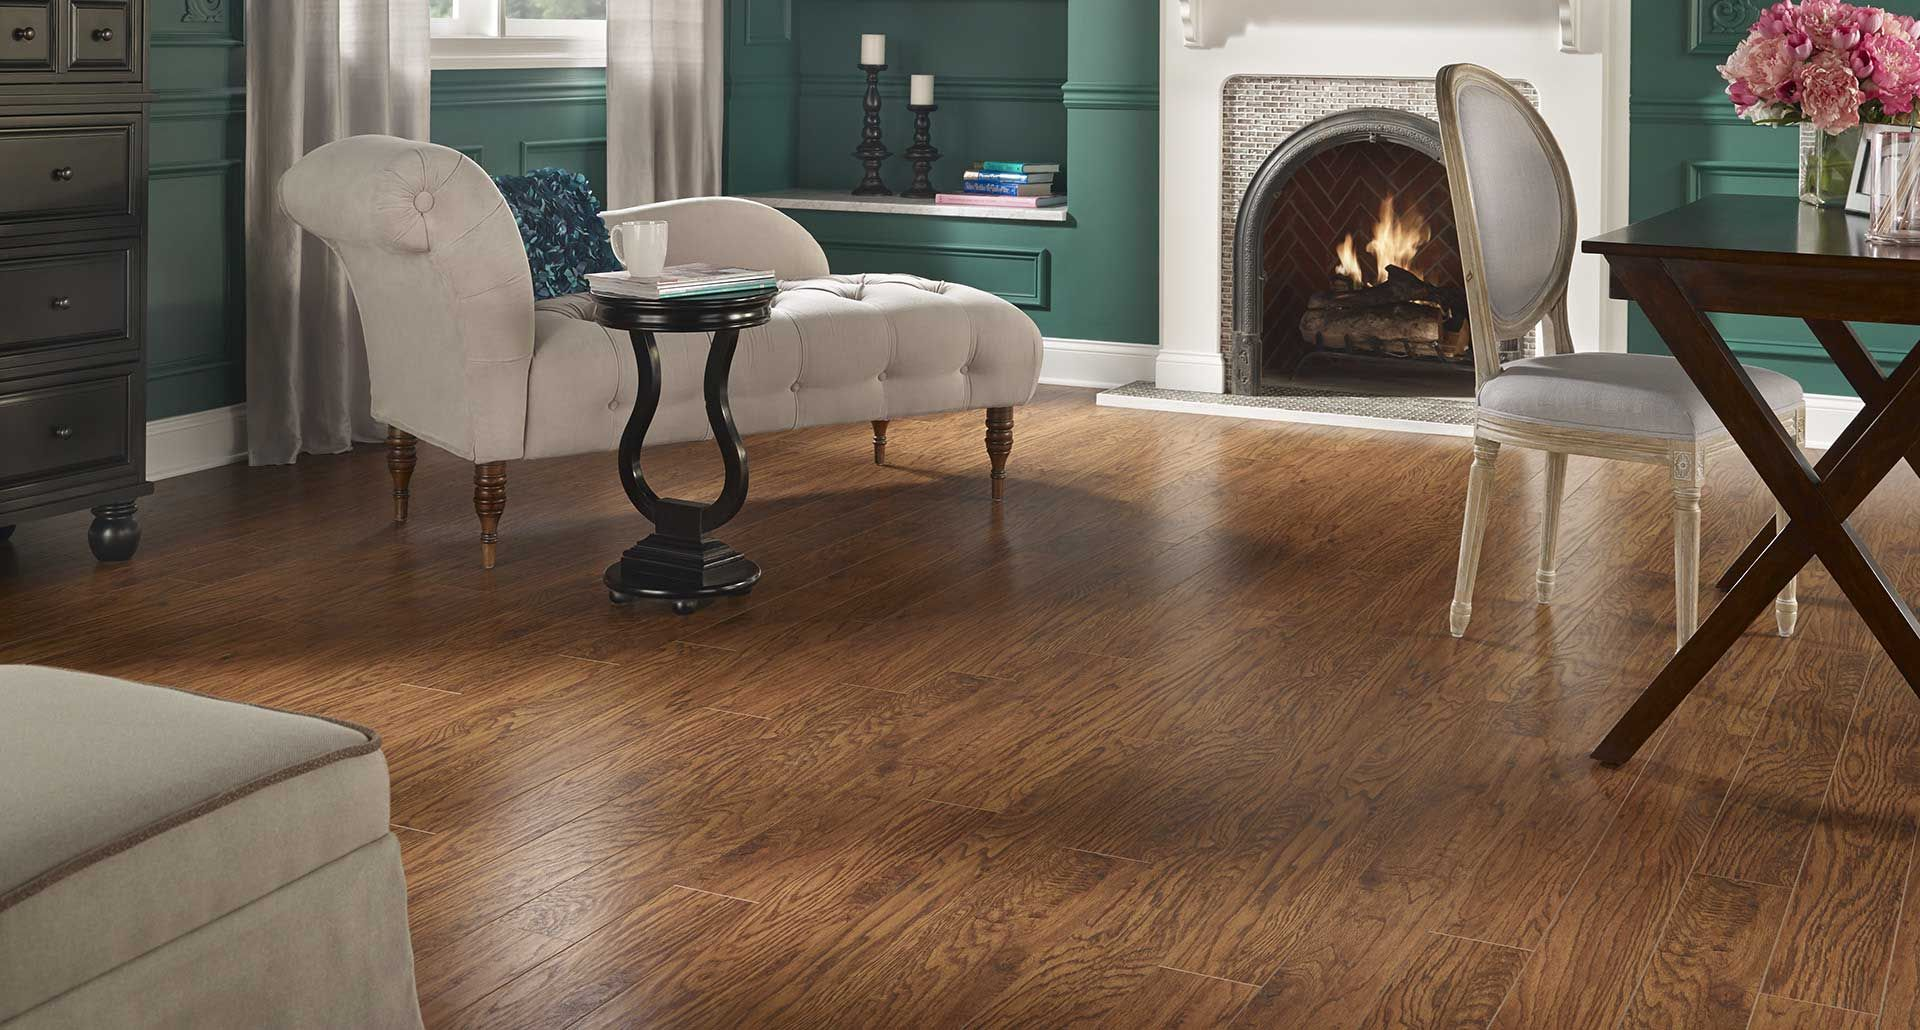 Handsed Heritage Hickory Laminate Floor Dark Wood Finish 8mm 1 Strip Plank Flooring Easy To Install And Covered By Pergo S Lifetime